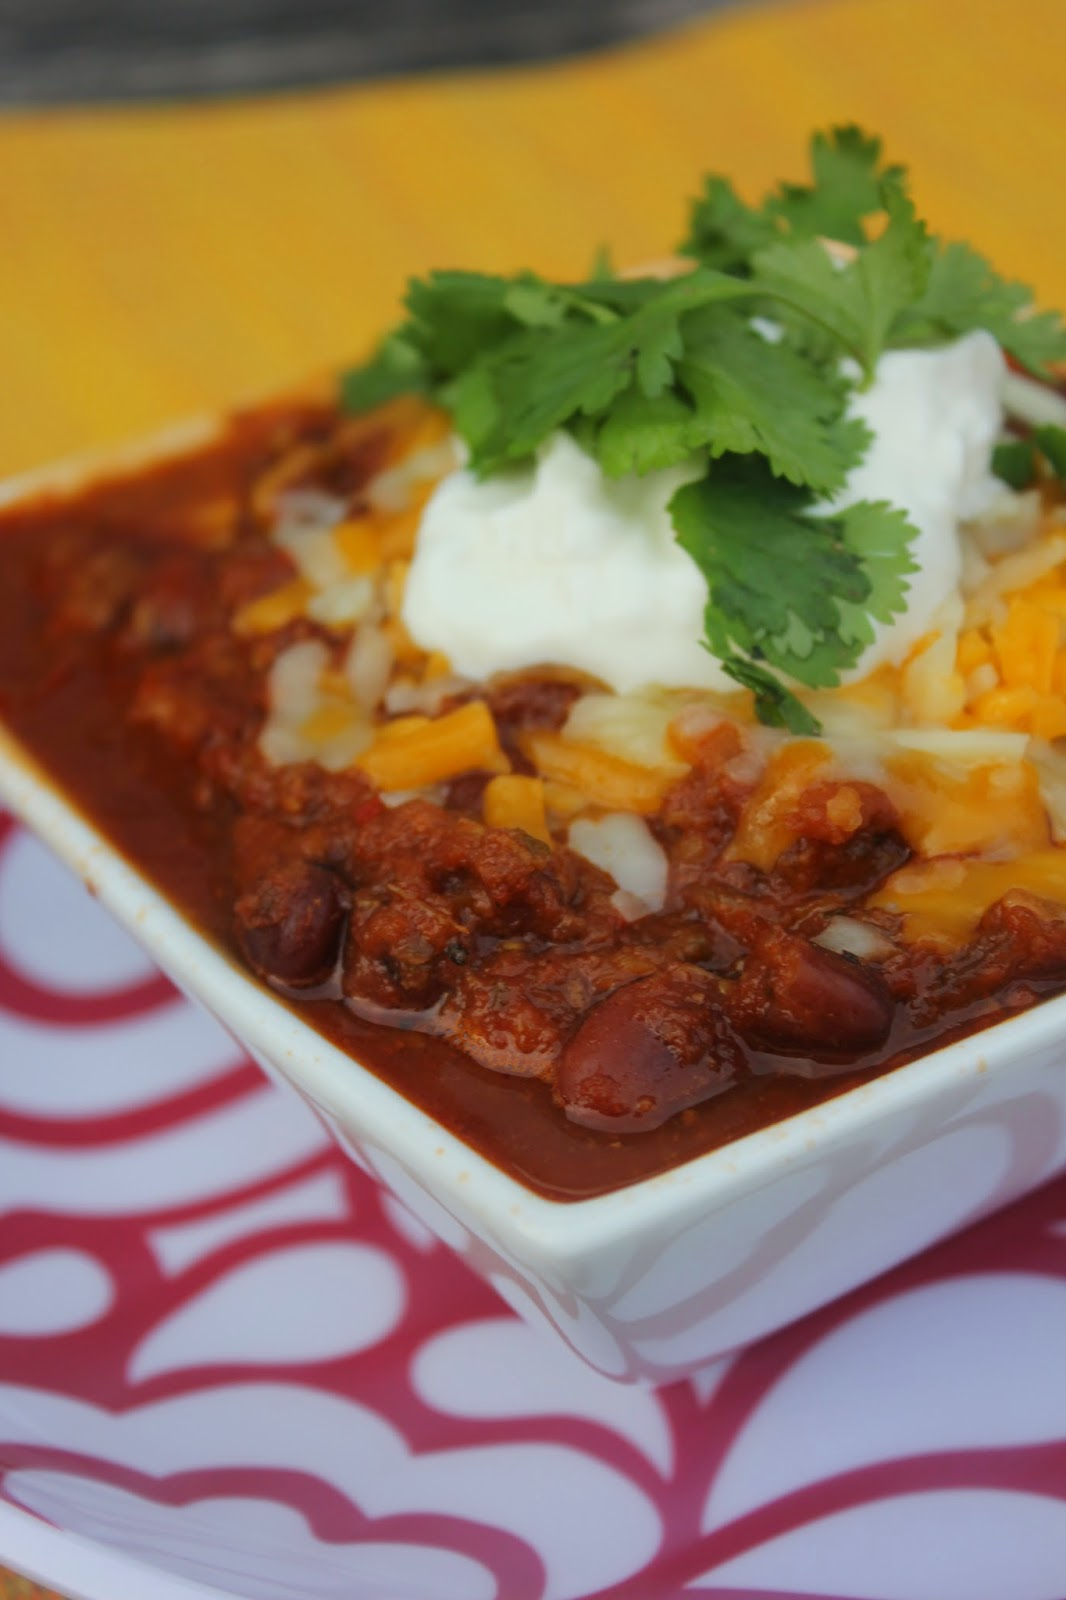 Recipe:  Freezer Meals, Freezer Meals, Recipe: Soup, Recipe: Beans, legumes, Food Storage Recipes, chipotle, Awesome Freezer Homemade Chili, Recipe:  Beef, Deals to Meals